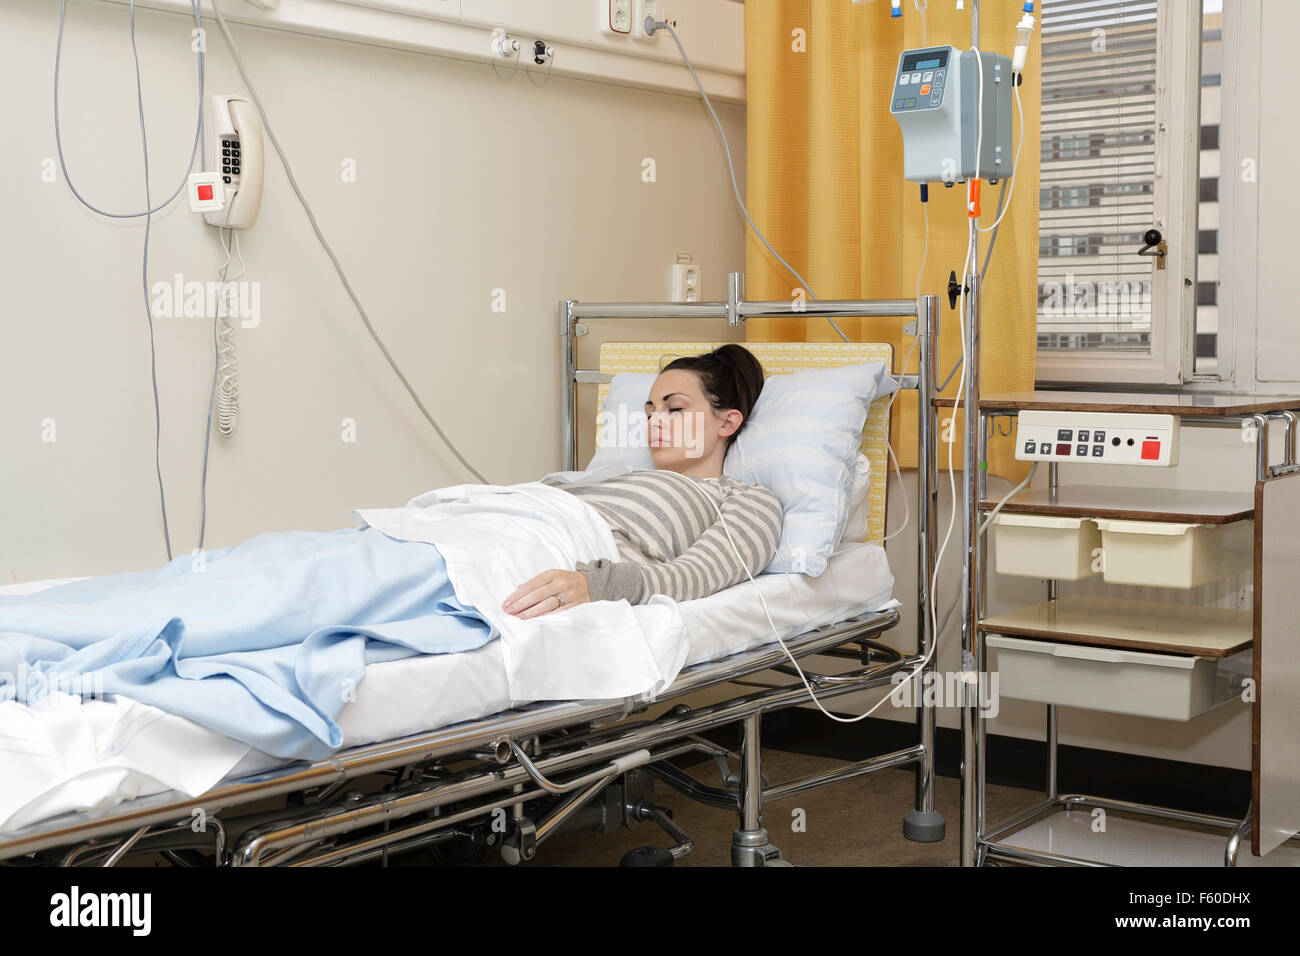 Sick young woman laying in hospital bed with Central Venous Catheter (CVC) being administered fluids and Parenteral - Stock Image